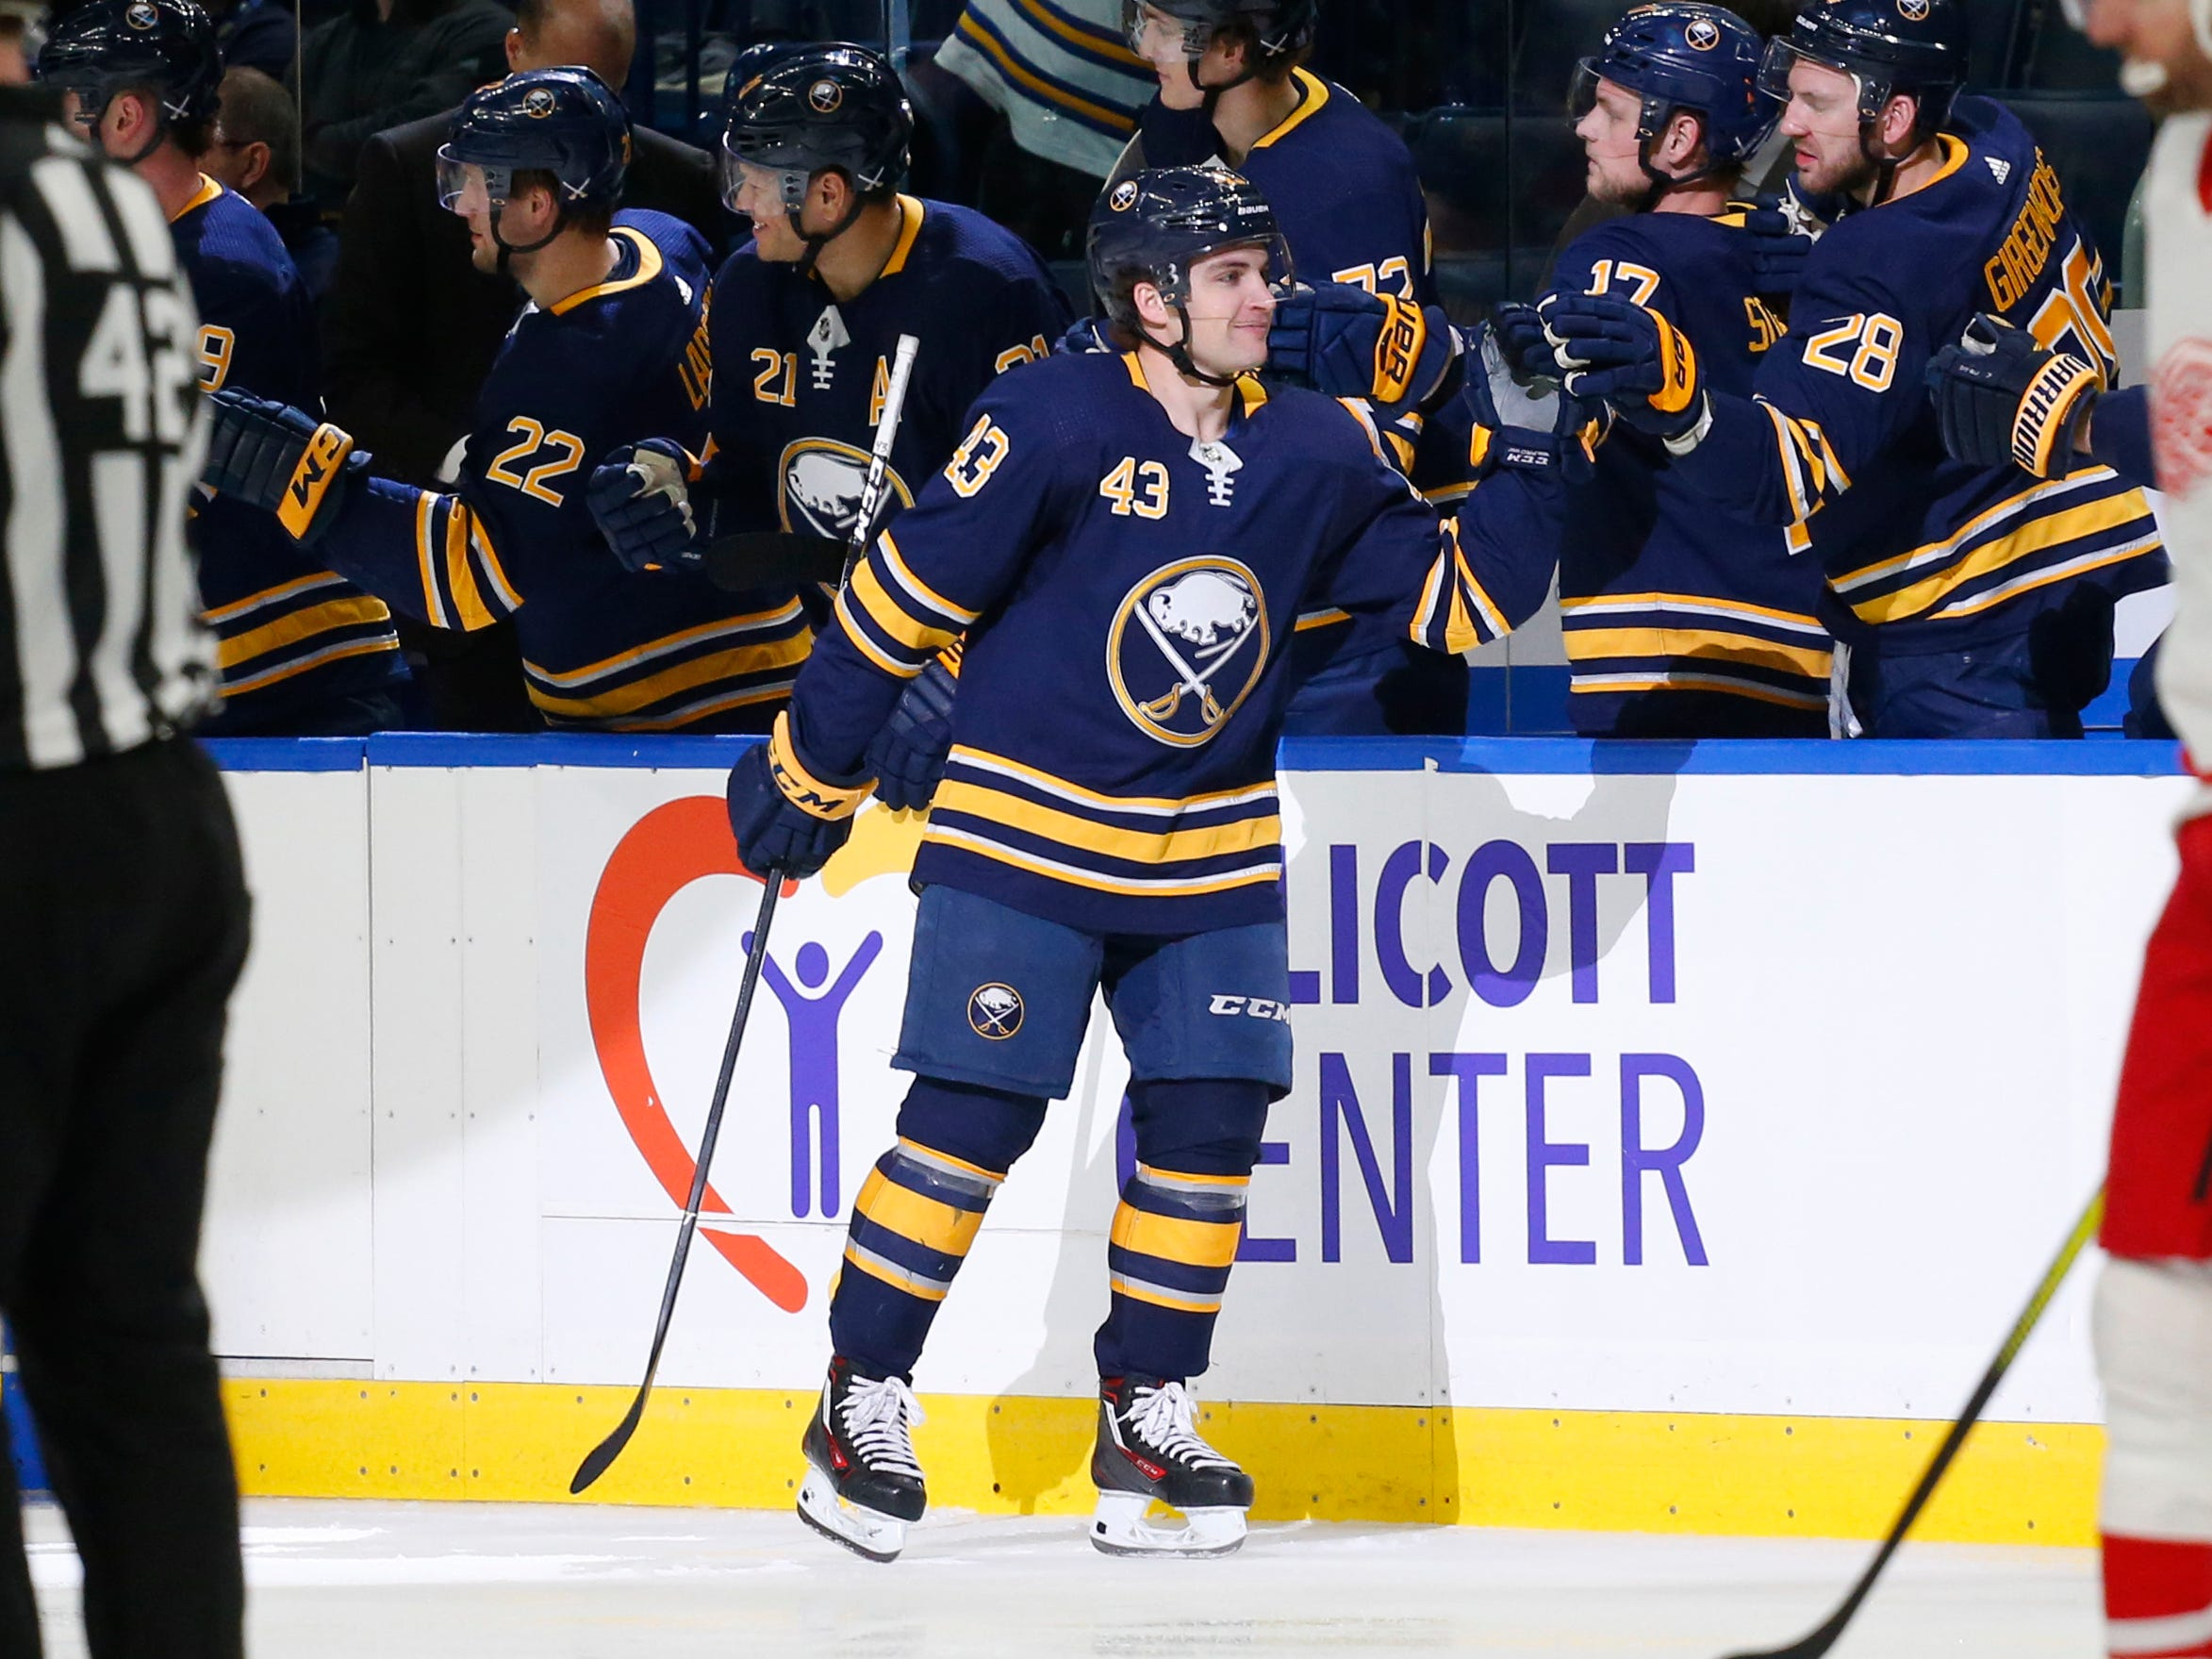 Buffalo Sabres forward Conor Sheary (43) celebrates his goal during the second period of an NHL hockey game against the Detroit Red Wings, Saturday, Feb. 9, 2019, in Buffalo N.Y. (AP Photo/Jeffrey T. Barnes)